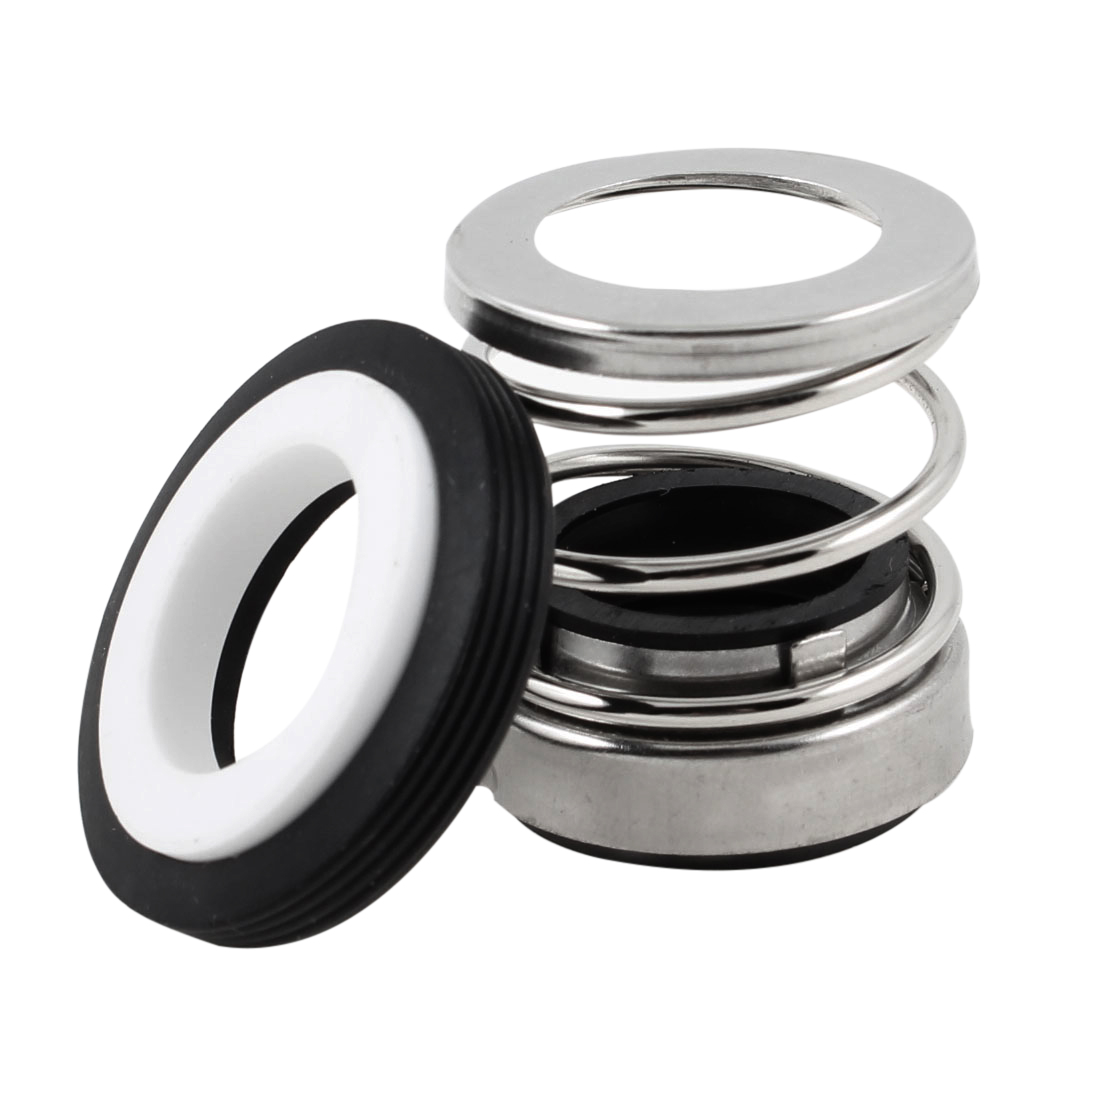 18mm Diameter Coiled Spring Rubber Bellow Pump Mechanical Seal BIA-18